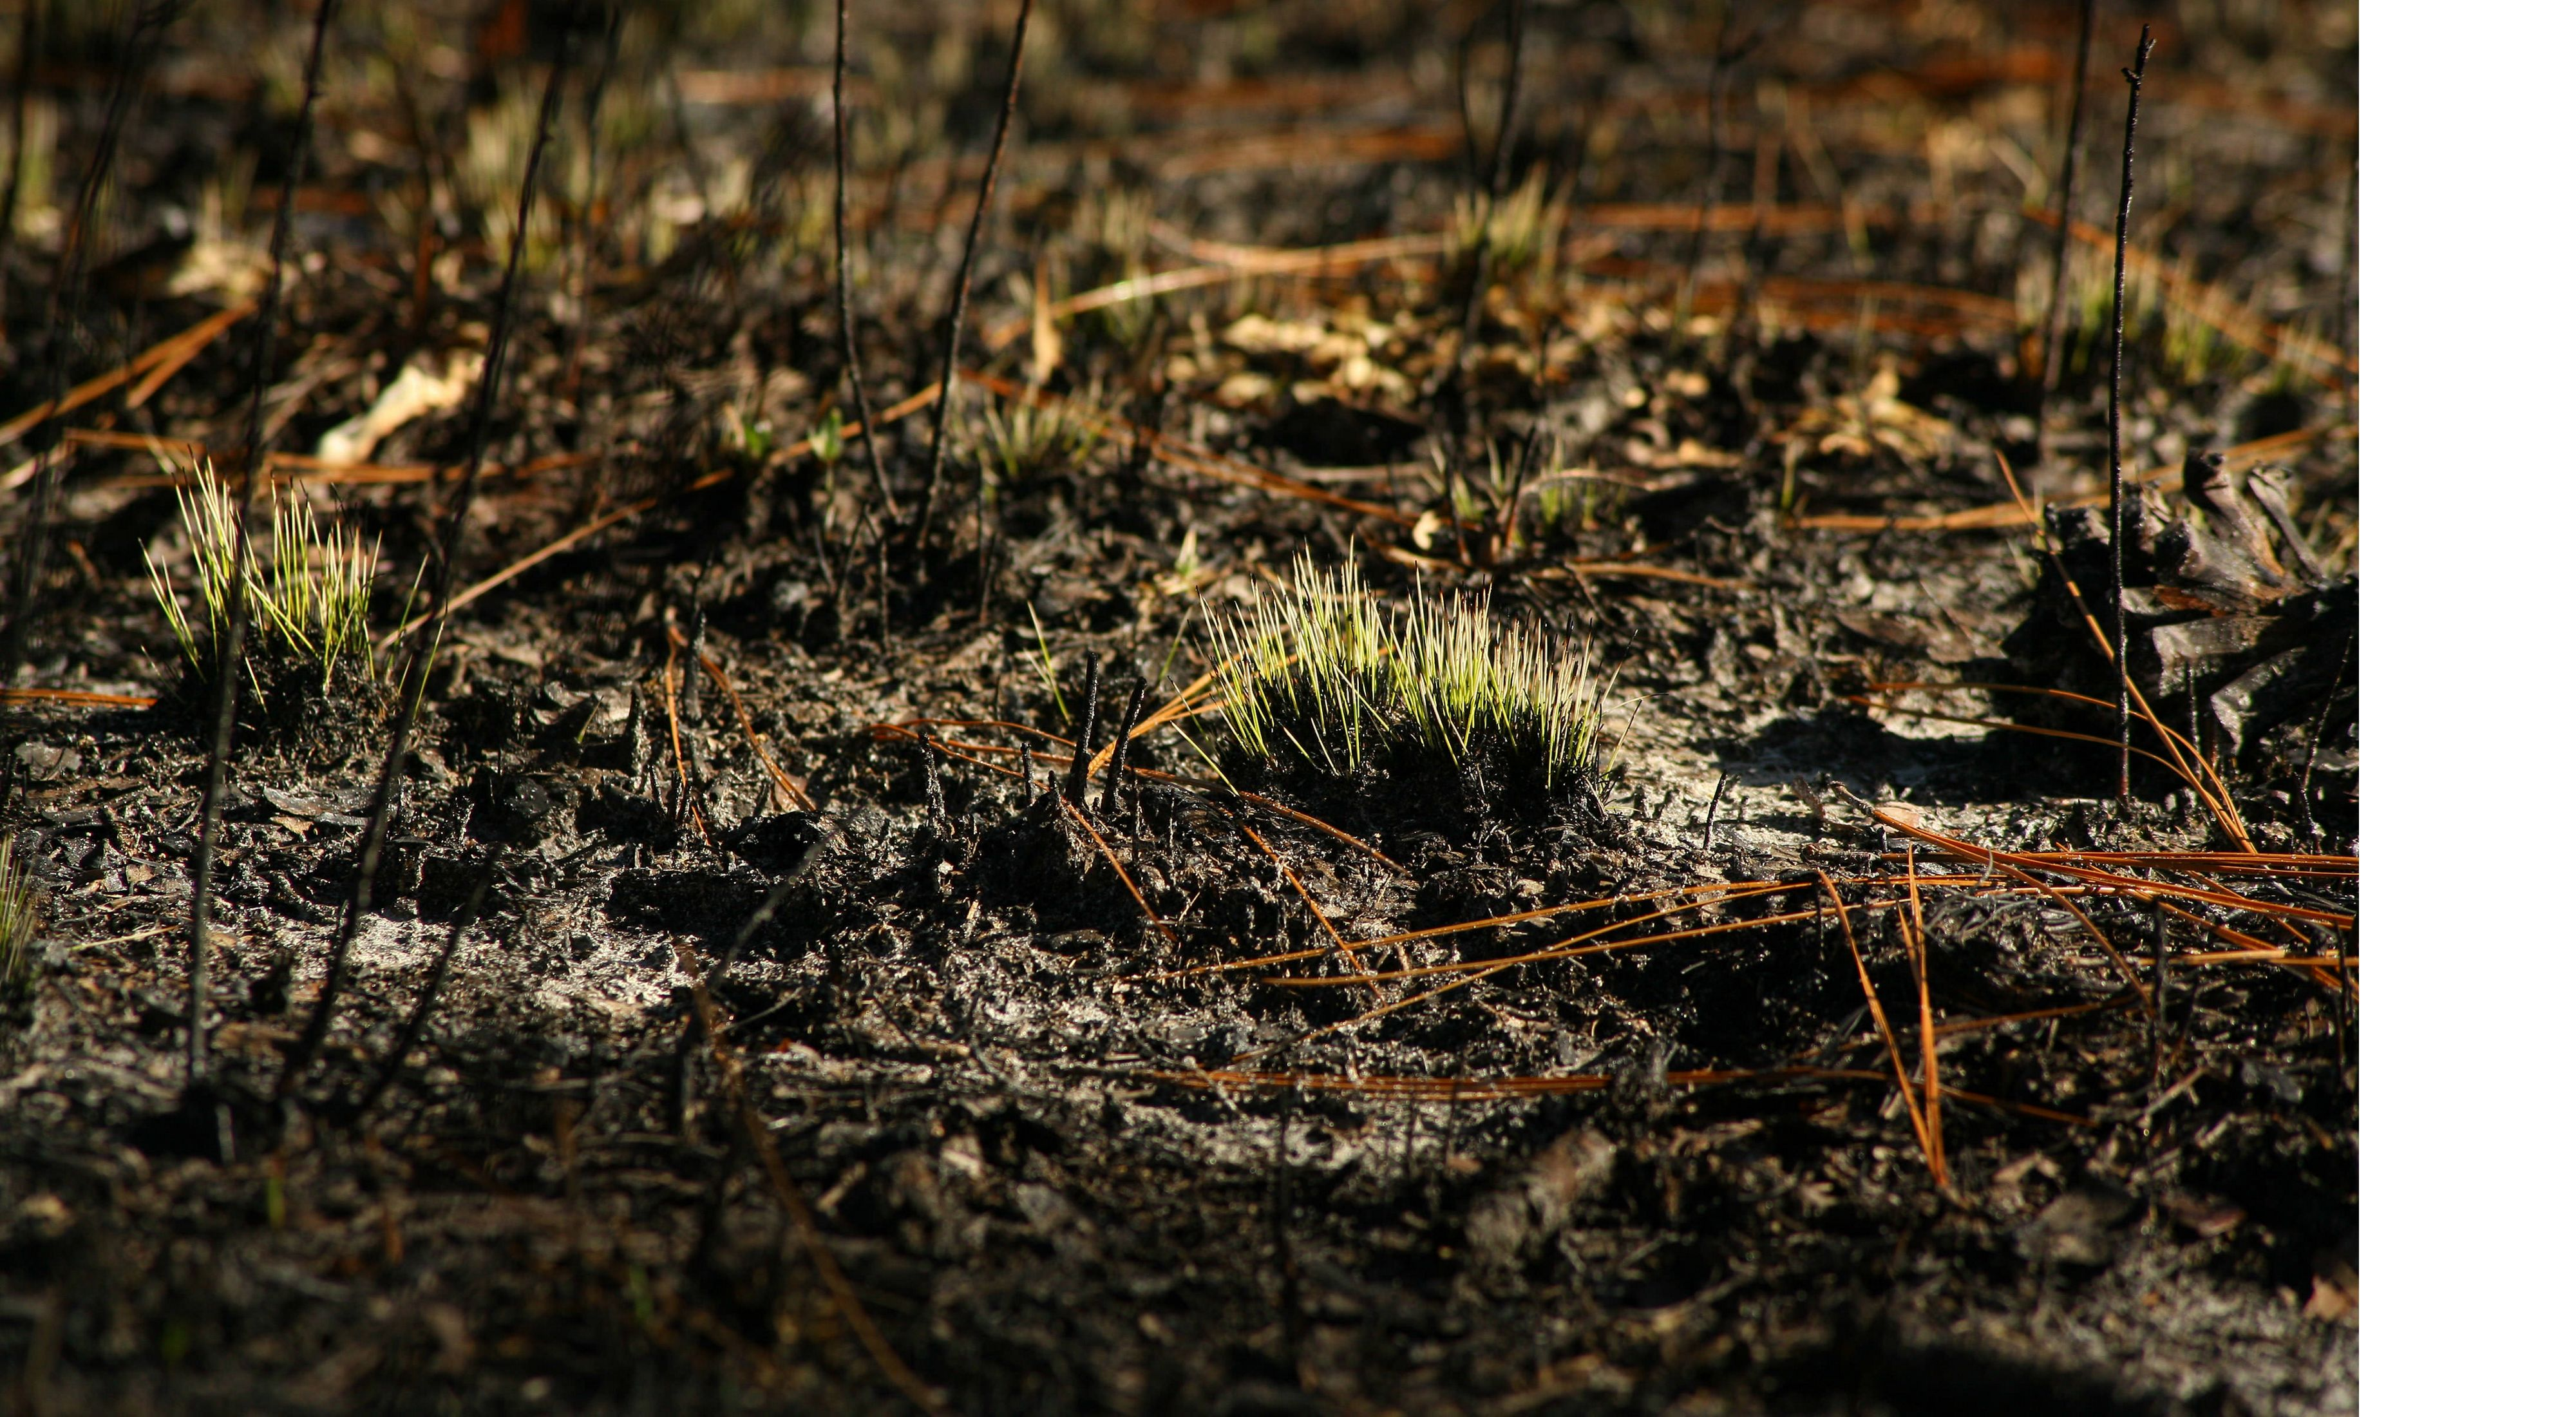 Bright green growth emerges in the longleaf pine forest after a controlled burn.